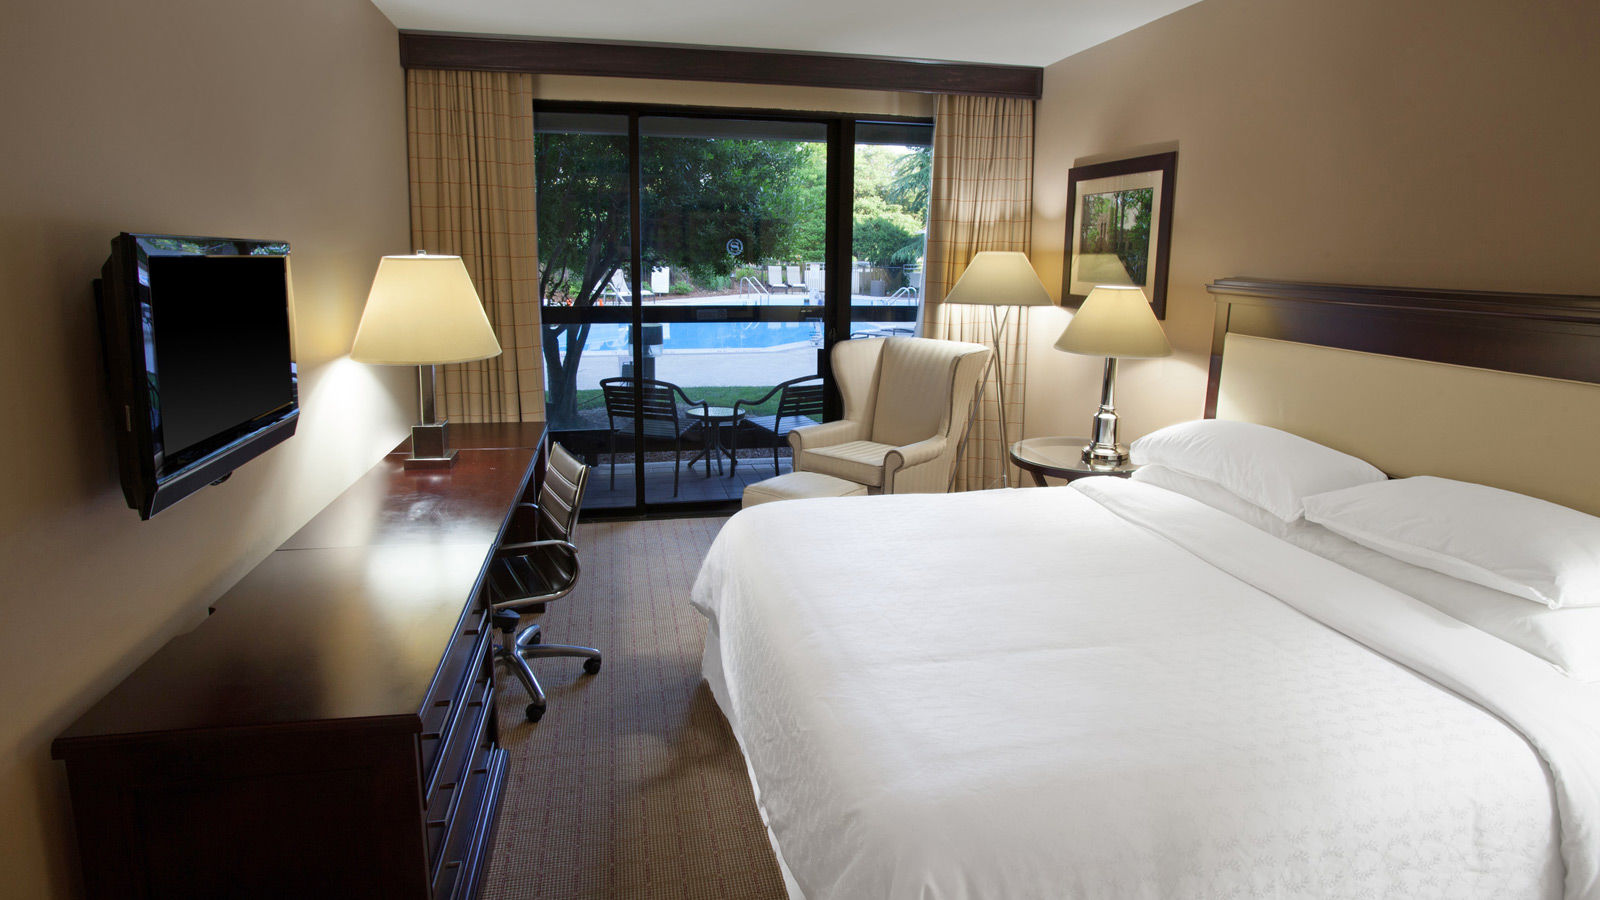 Hotels in Chapel Hill NC - Traditional King